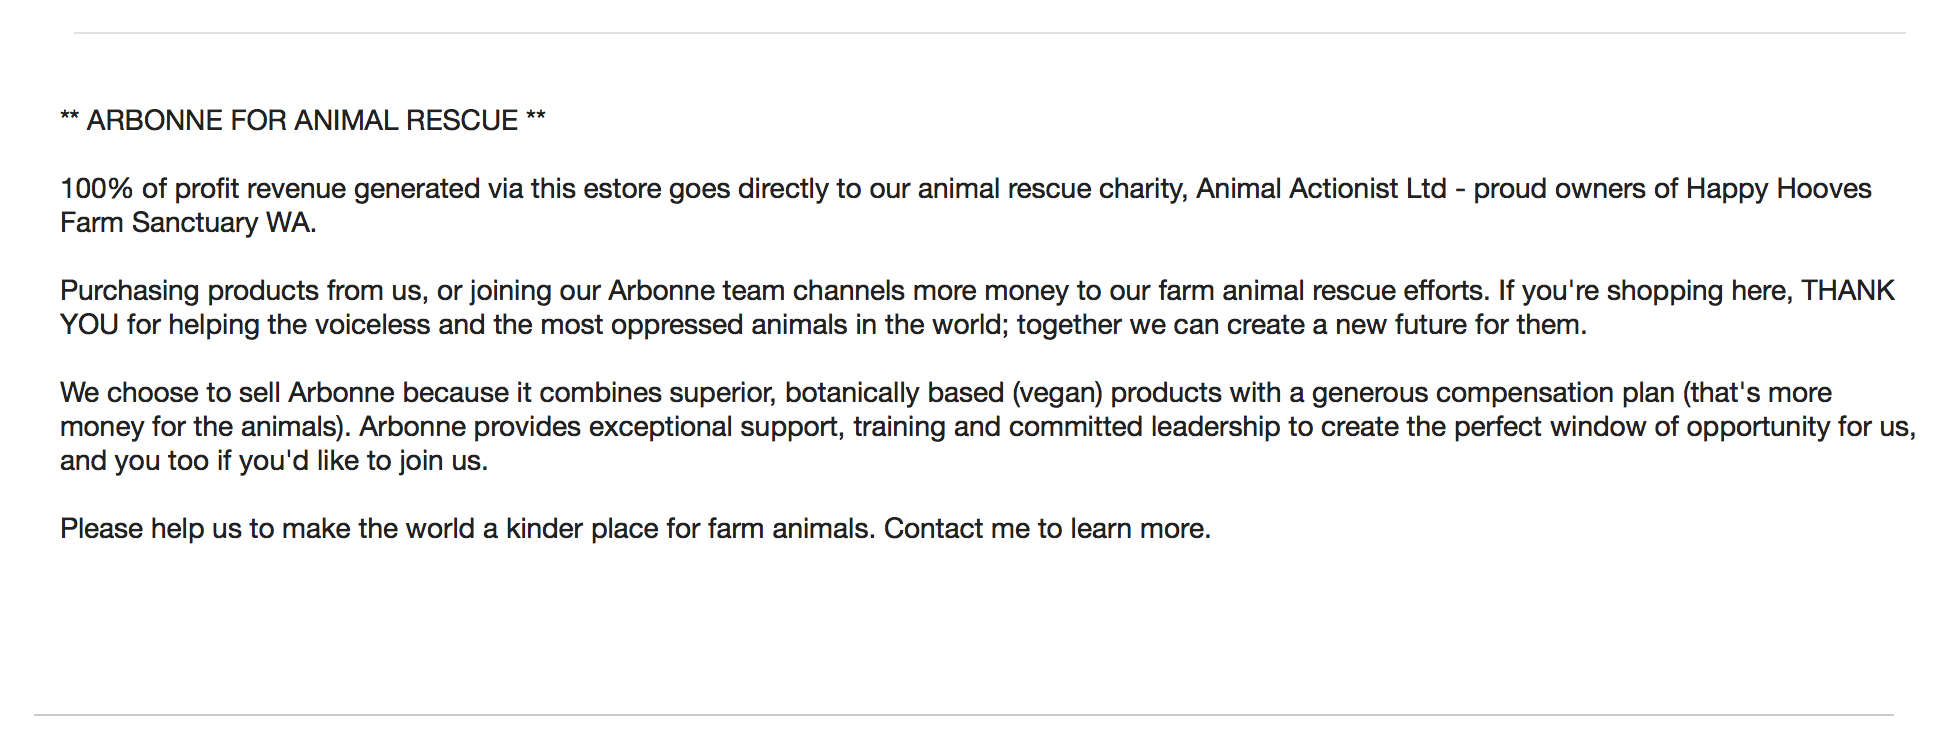 arbonne-for-animal-rescue